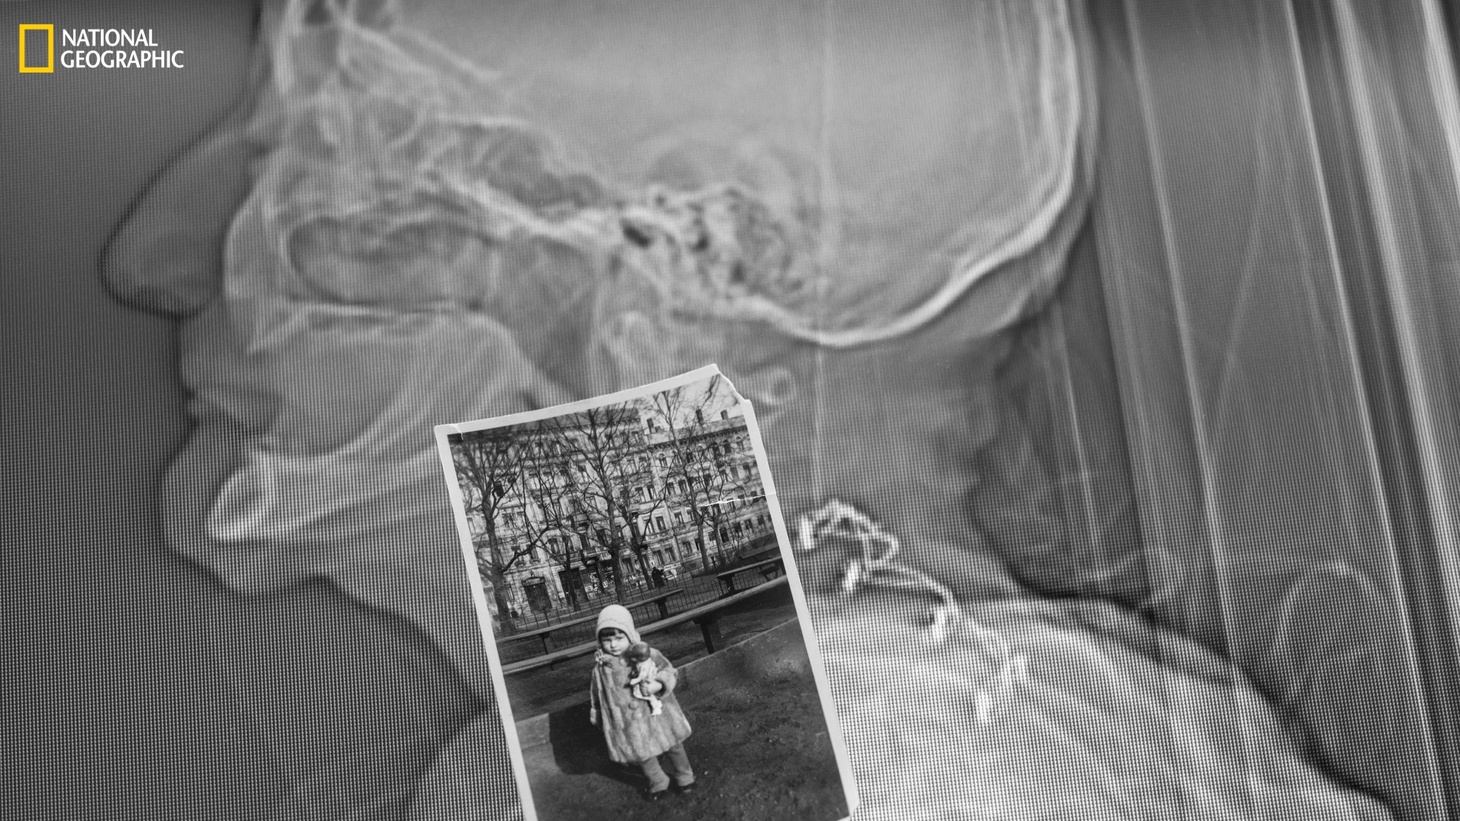 A CT scan, paired with a photo of Susan Potter at age three, shows wires stabilizing her neck vertebrae after an earlier car crash. Potter's medical history was known.